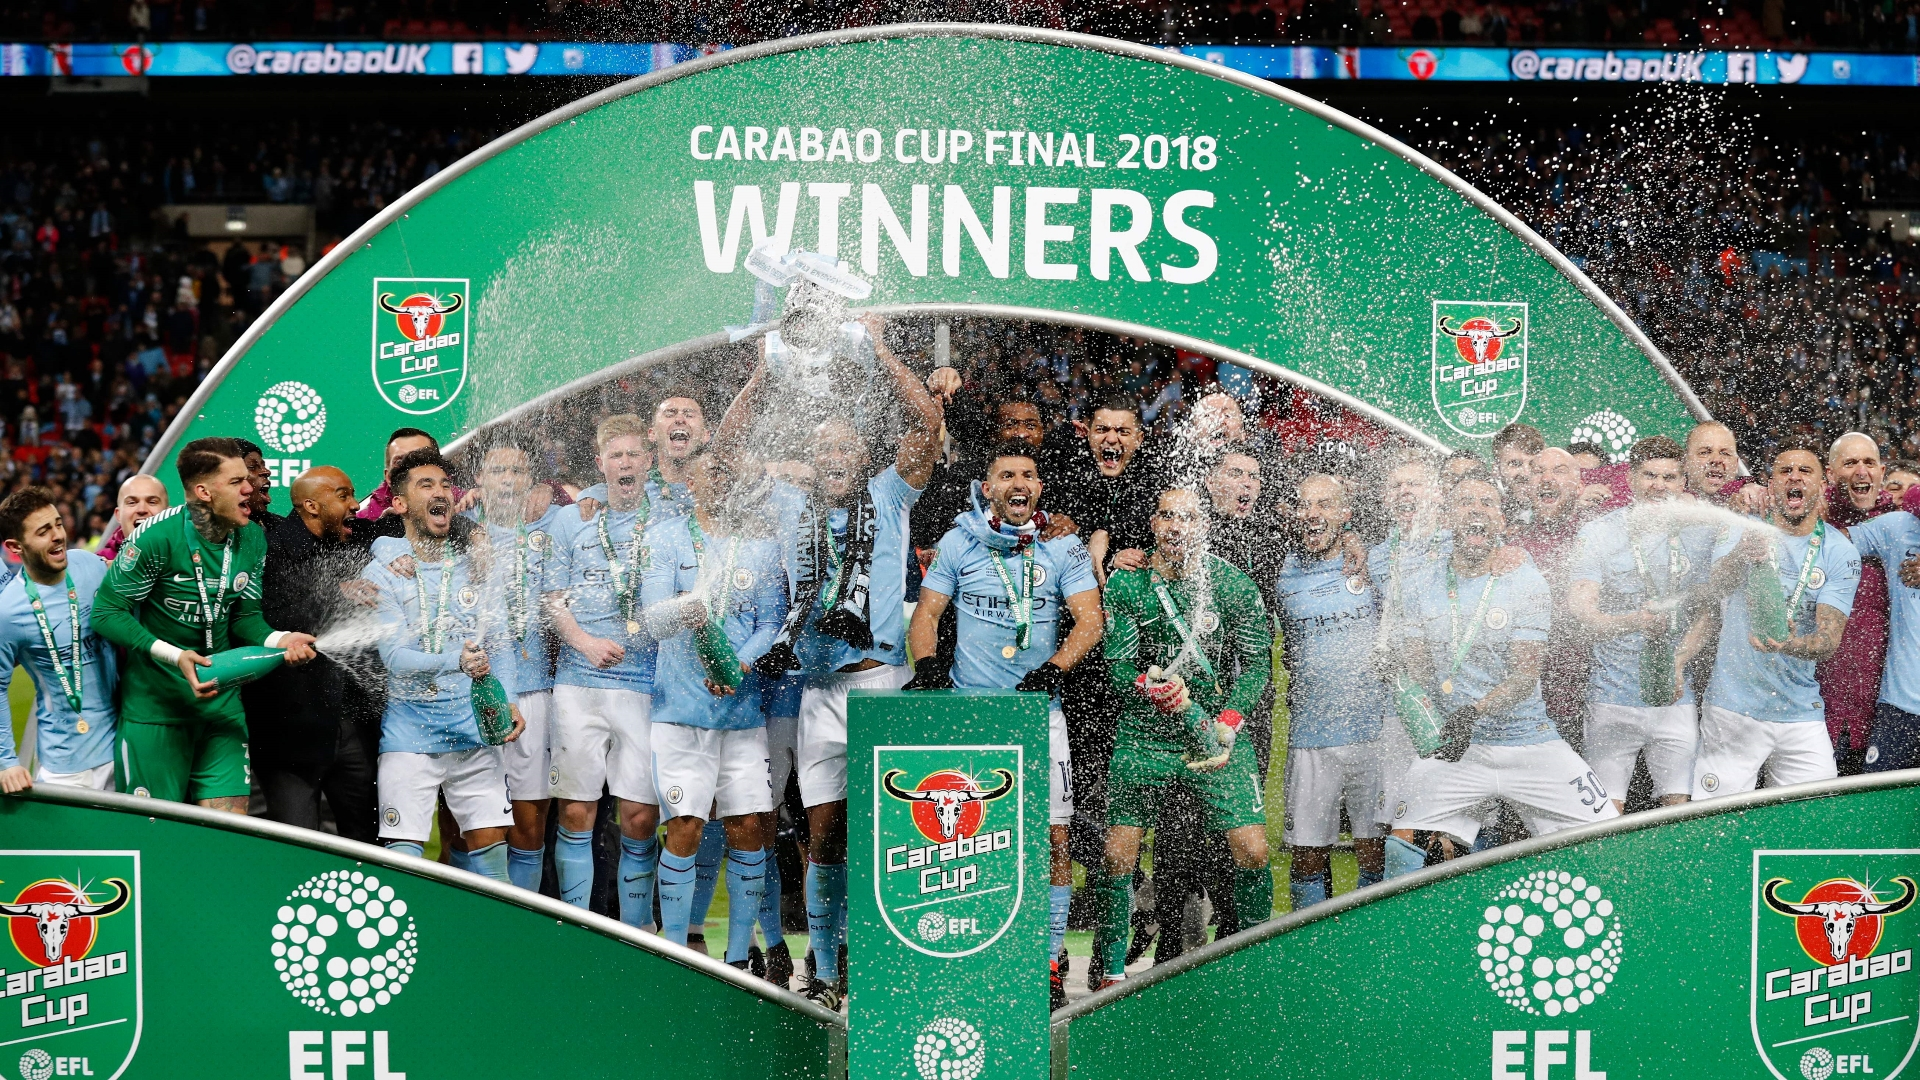 Arsenal hit record new lows as Man City set club best in Carabao Cup final  | Goal.com